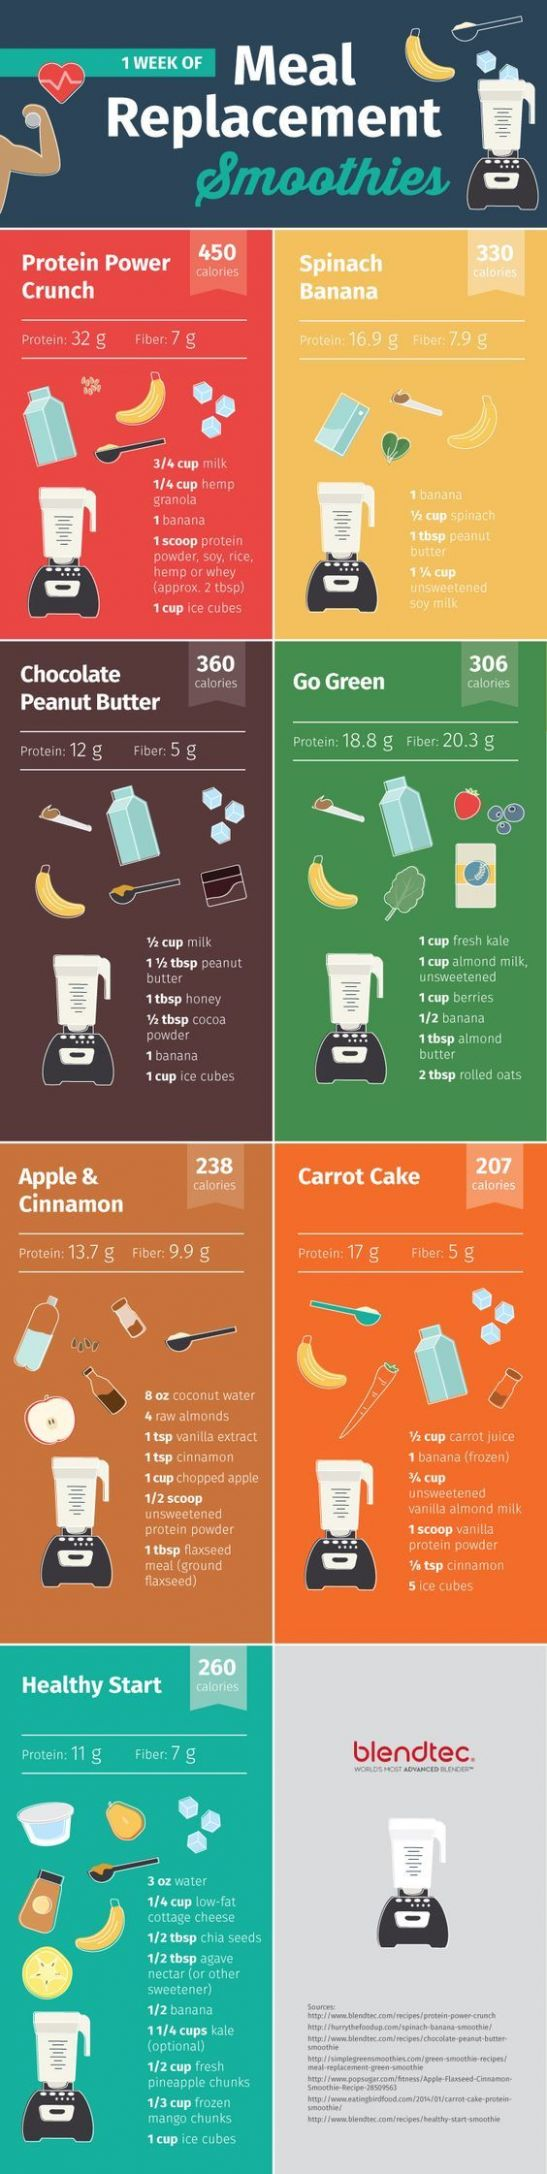 9 Meal Replacement Smoothie Diet Ideas   Meal replacement ..